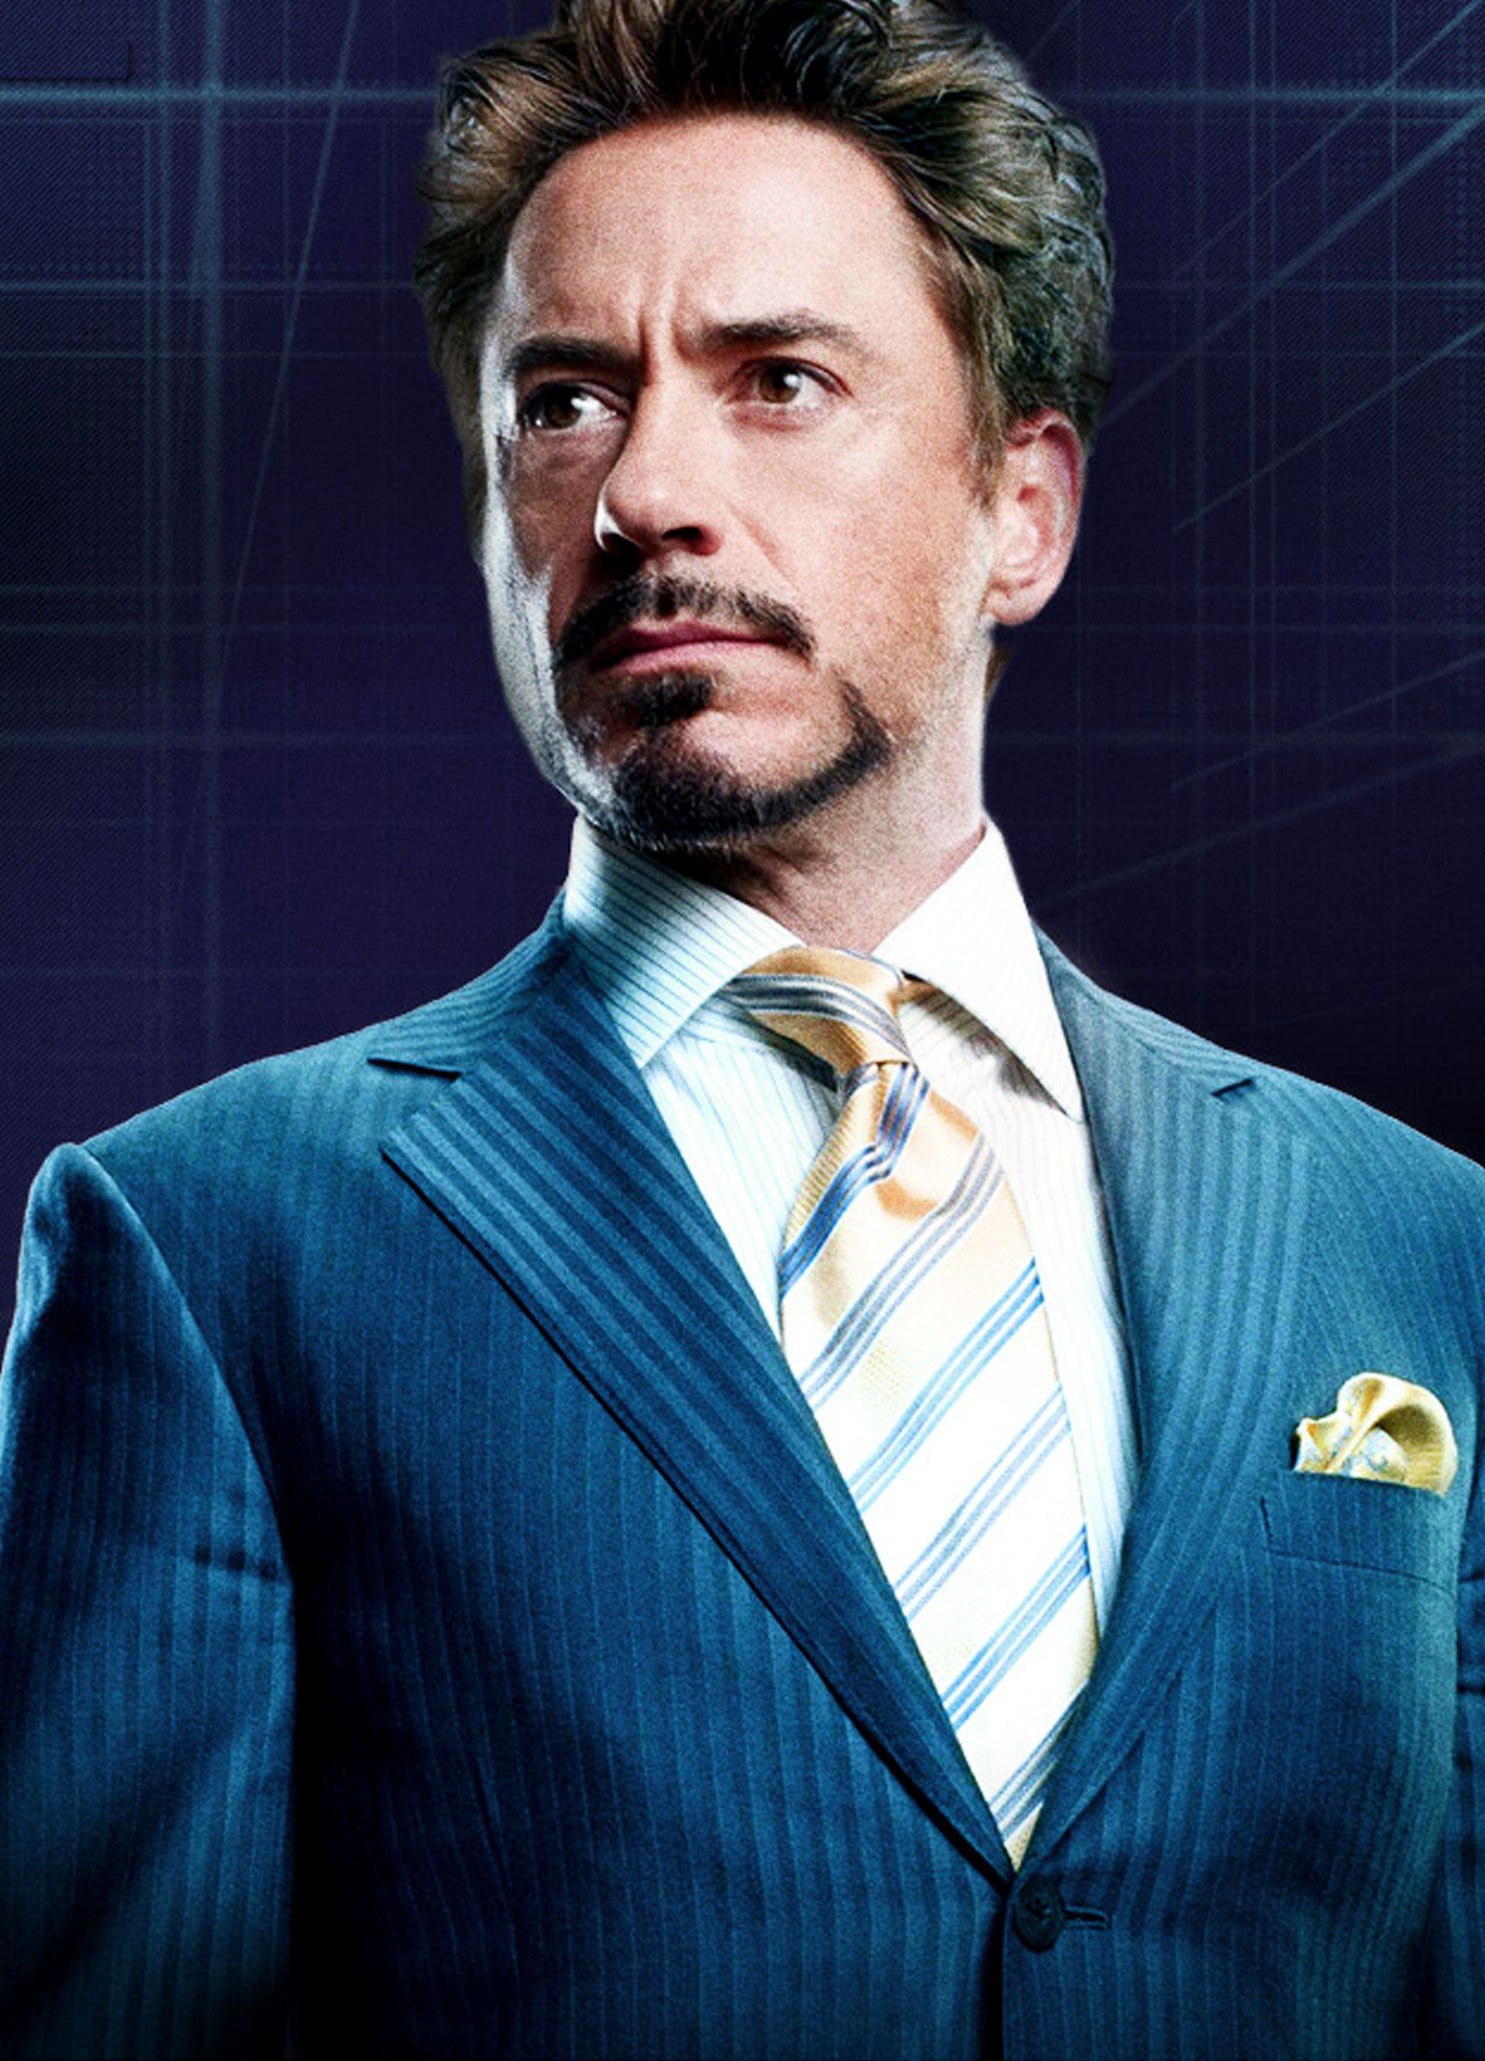 tony stark images hd - photo #17